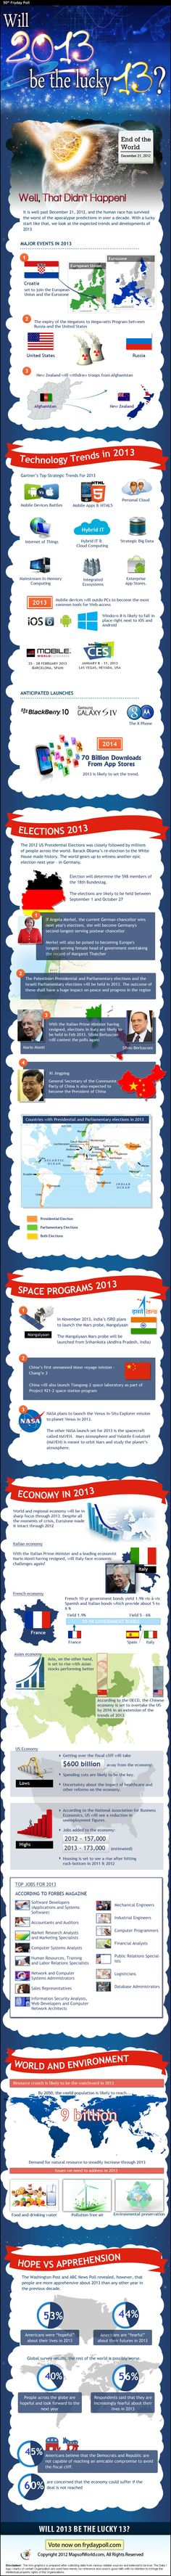 Will 2013 be the lucky 13? - Facts & Infographic in the world #Infographics #Future #2013 #Trends #Facts